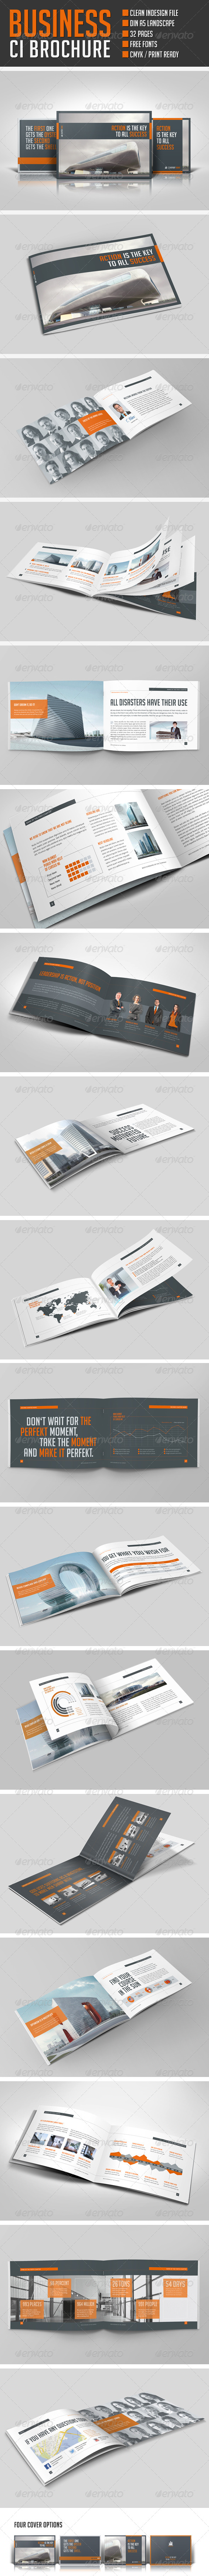 Business Horizontal Brochure - Corporate Brochures